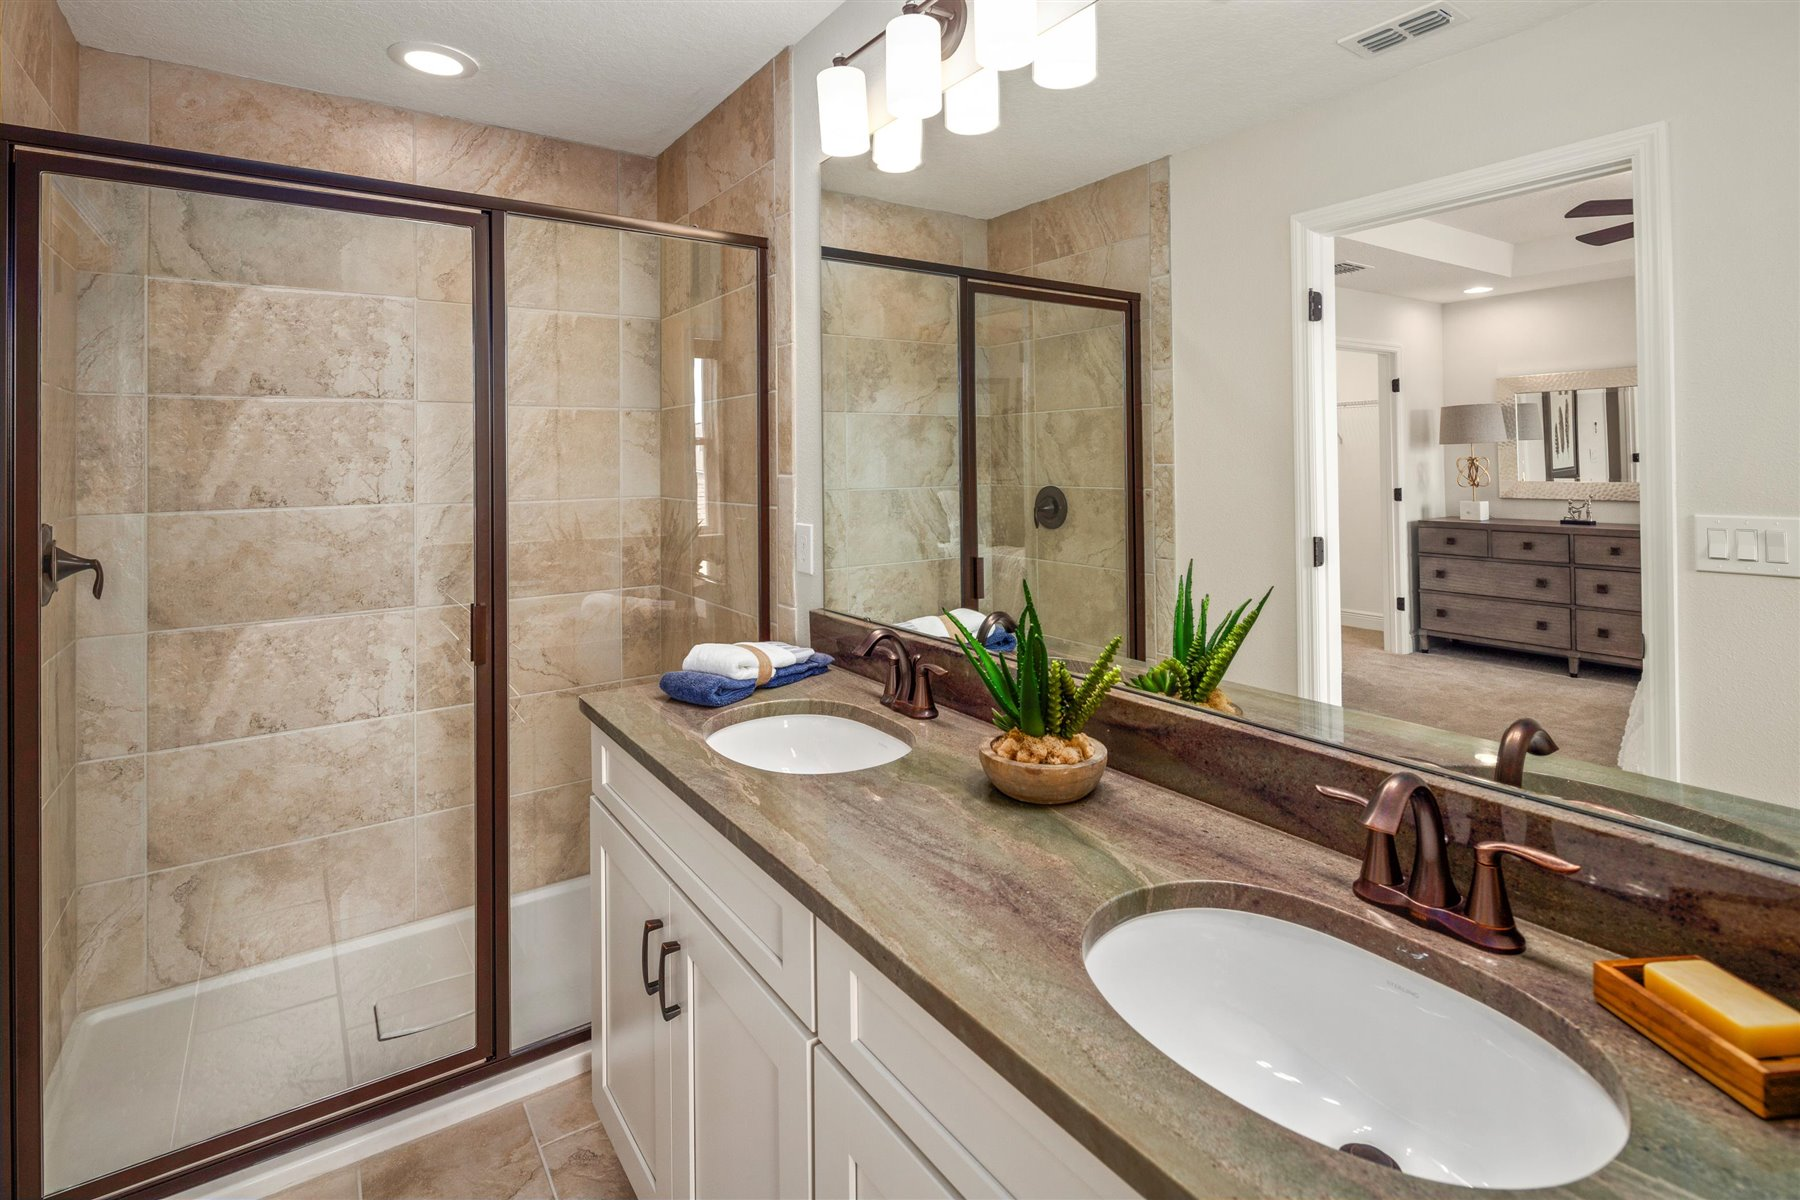 Arcadia Plan Bathroom_Master Bath at Hawksmoor in Winter Garden Florida by Mattamy Homes